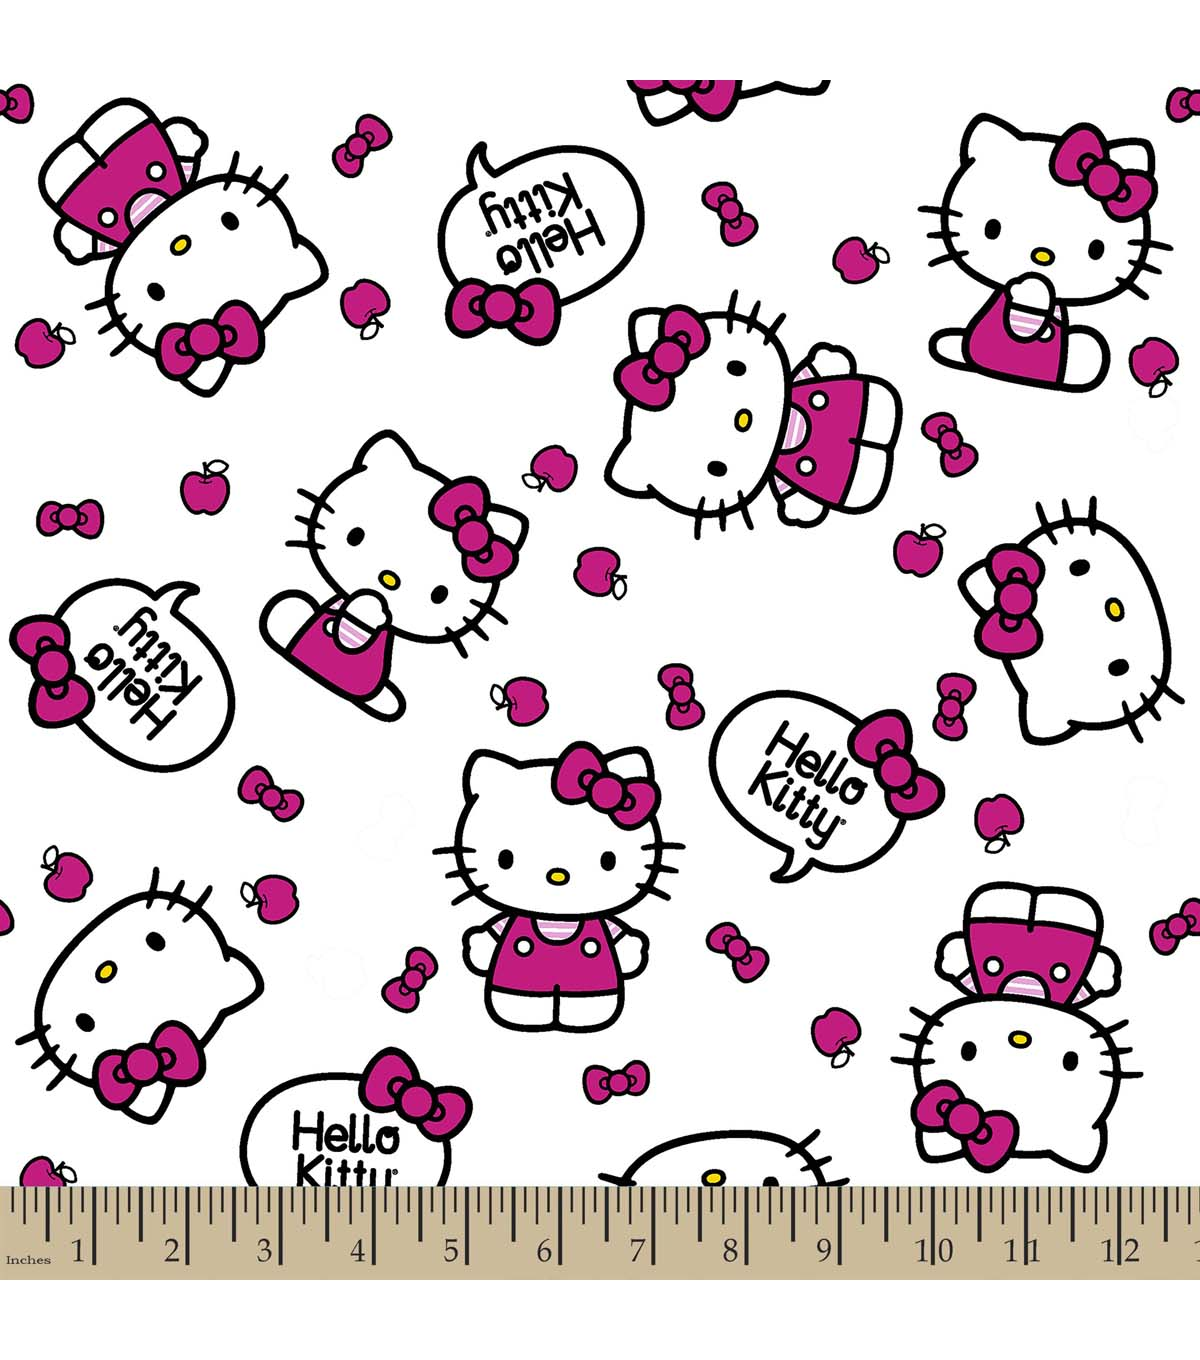 hello kitty Hello pack pink kitty pattern home design.